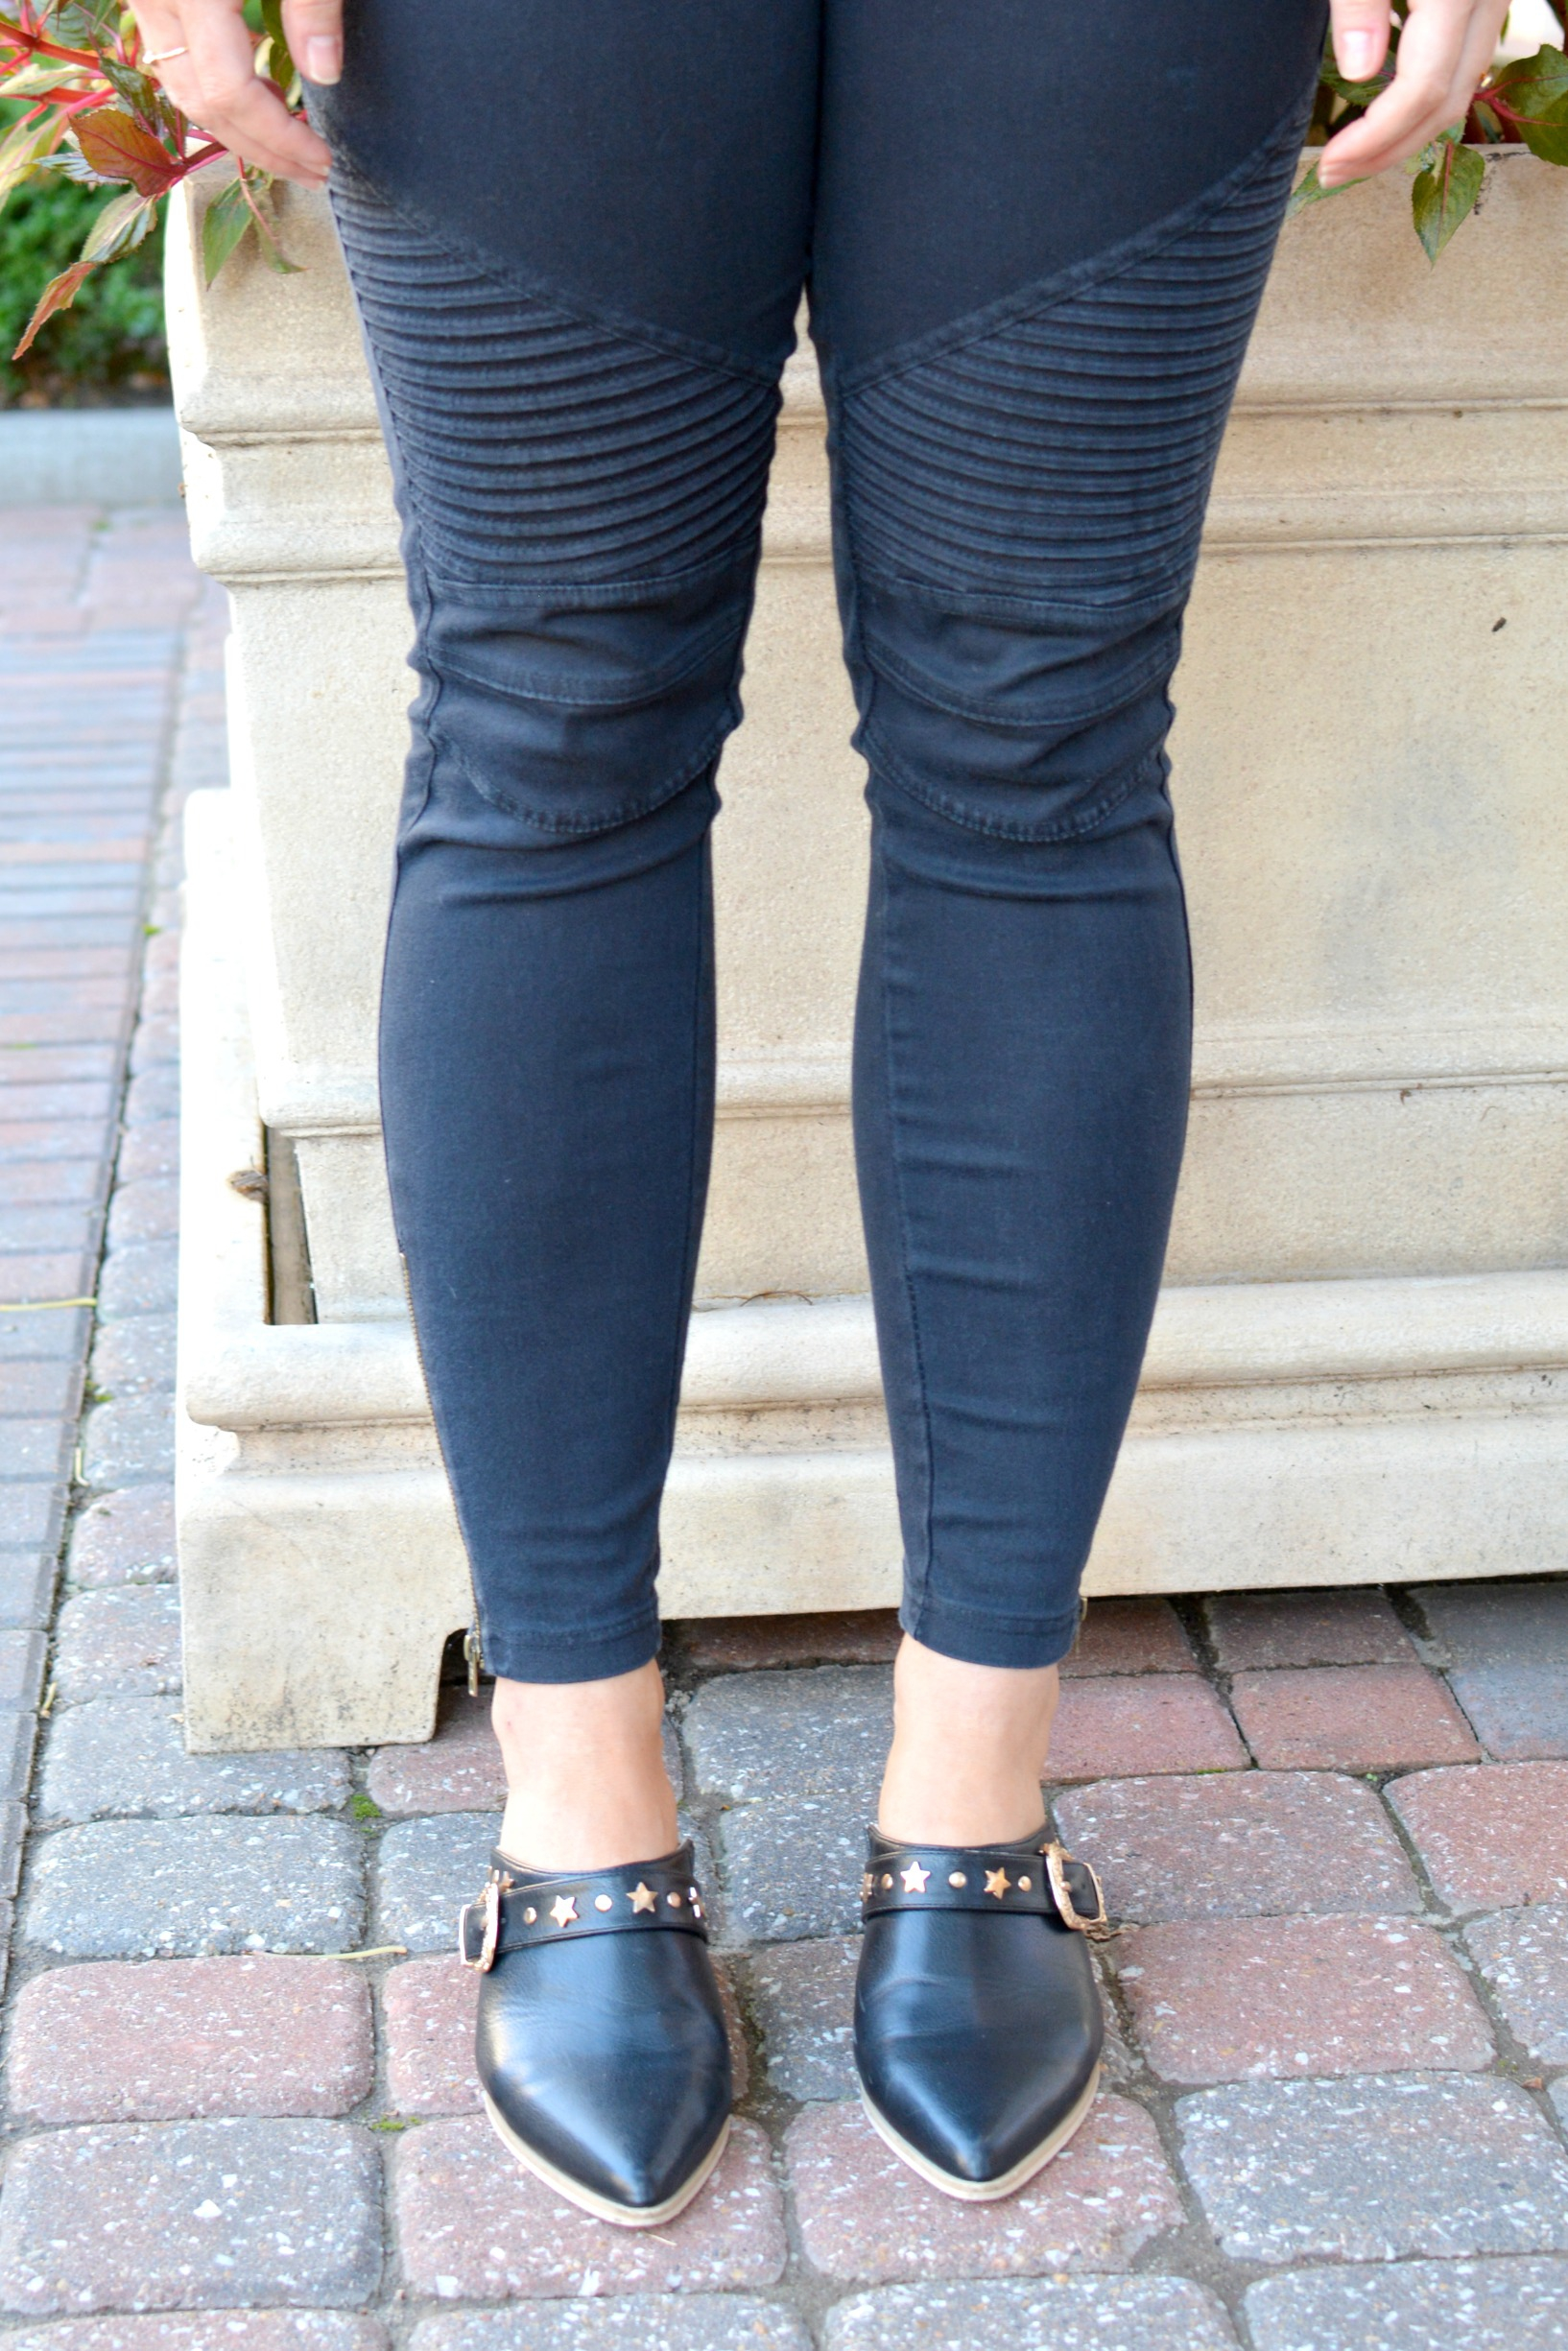 Ashley from LSR in black moto leggings and leather mules.